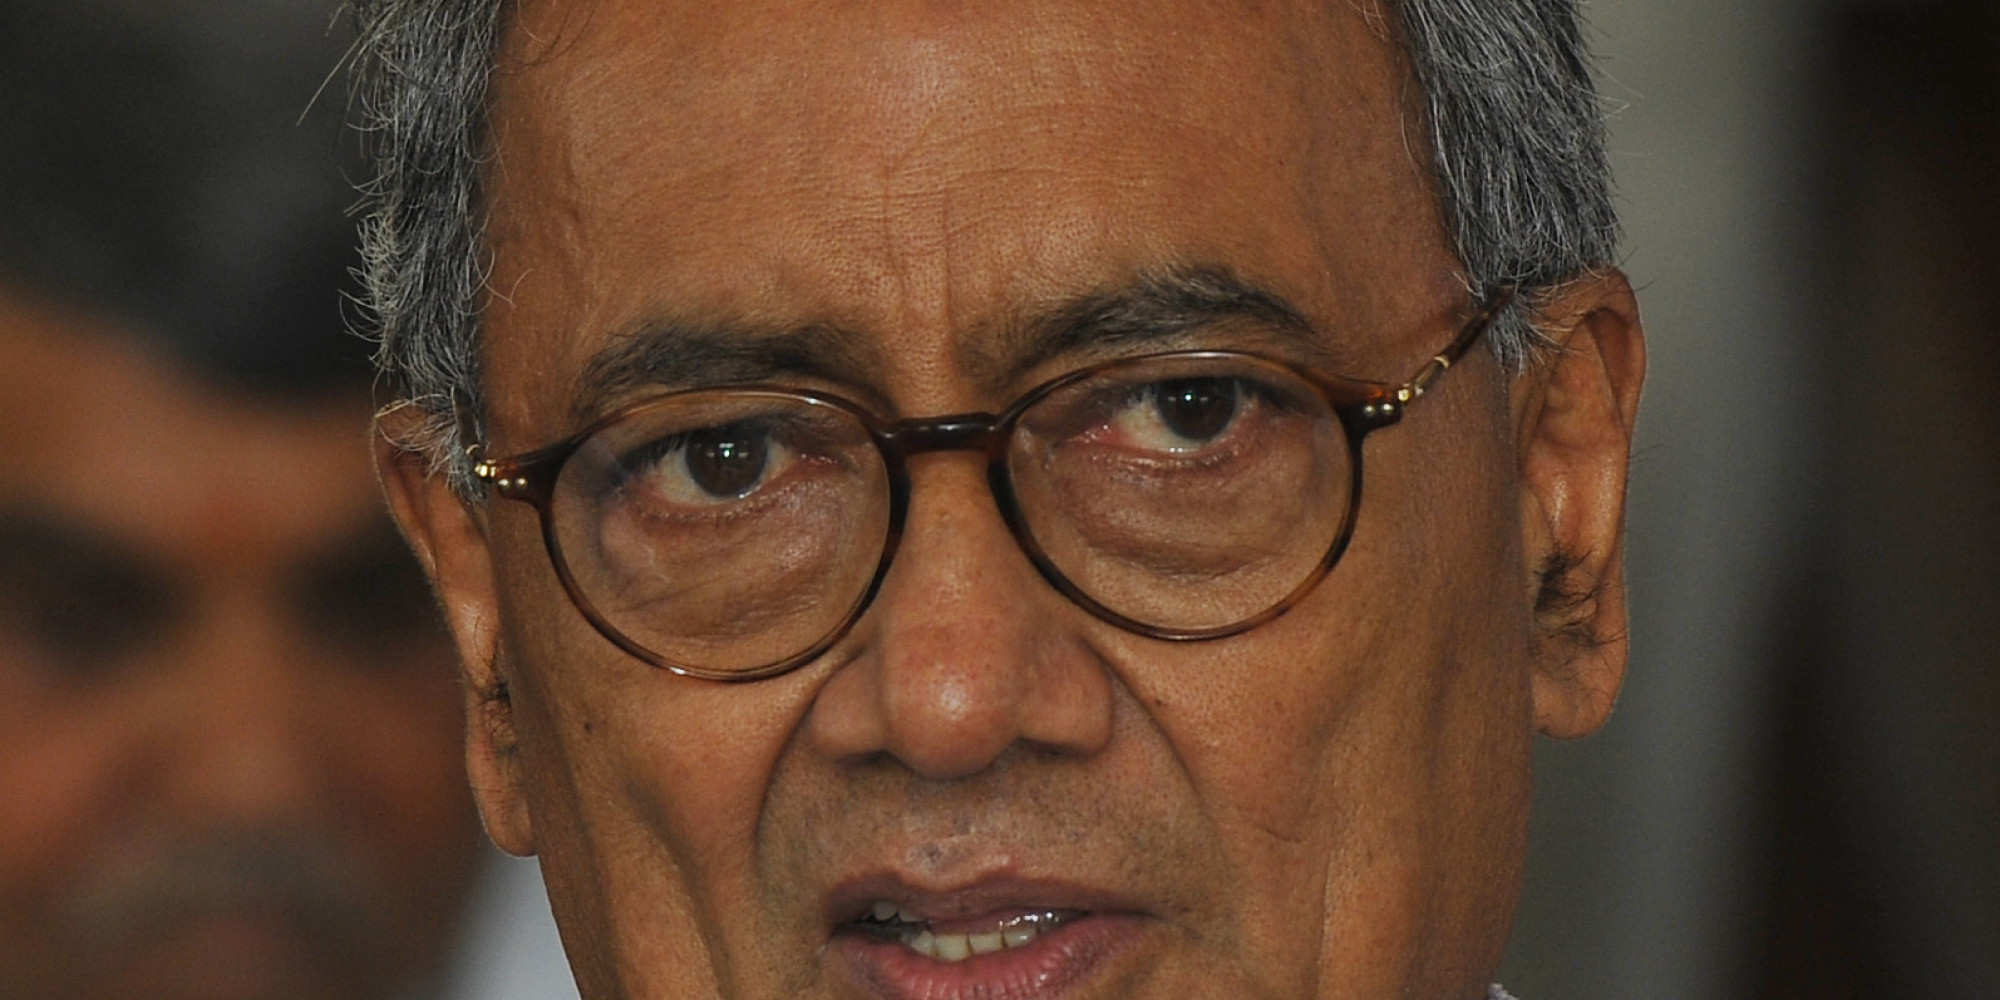 Had the Congress remained silent, it would have been seen as though the Congress was supporting Owaisi: Digvijaya Singh